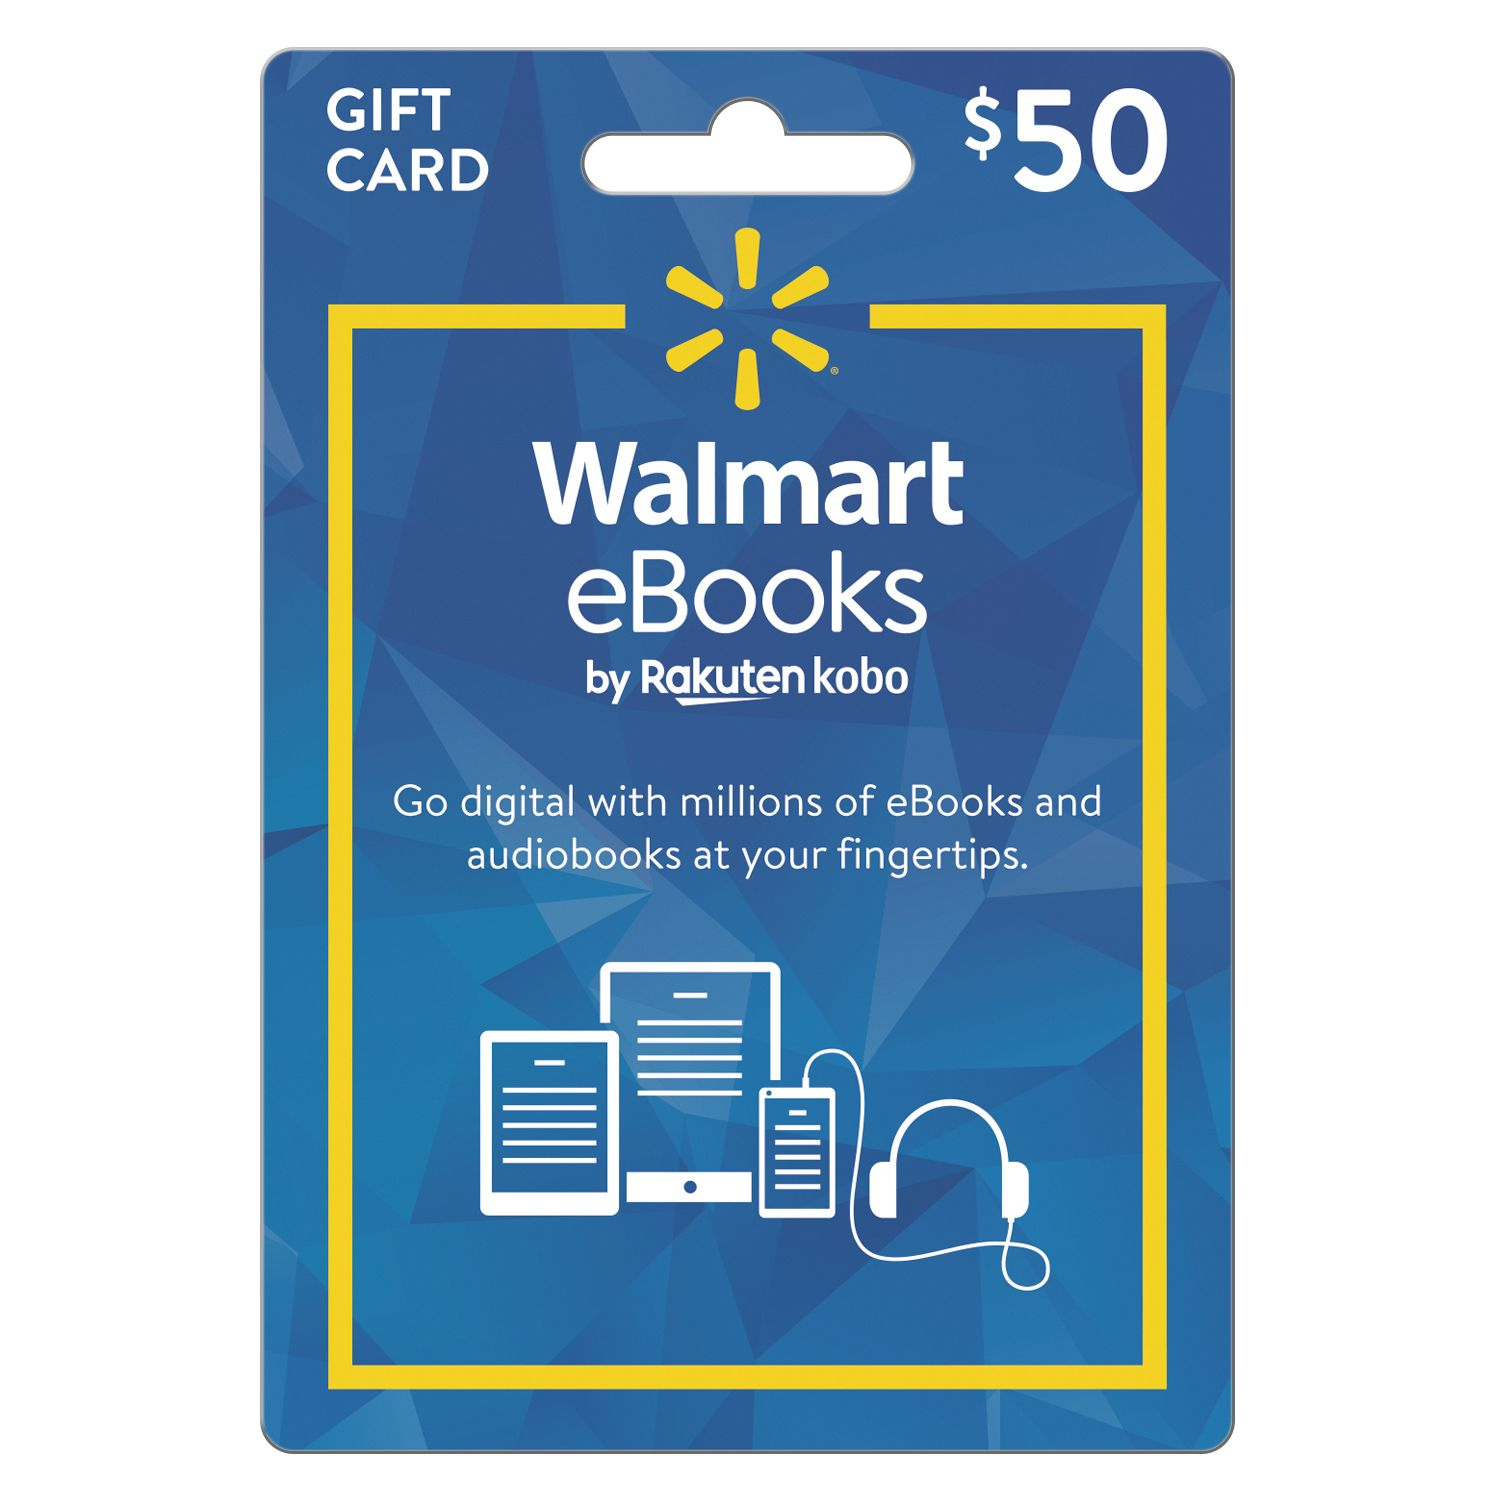 bca39bde1d5103562ea90a9fc8e6b1ff - How Long Does It Take To Get An Email Delivery From Walmart